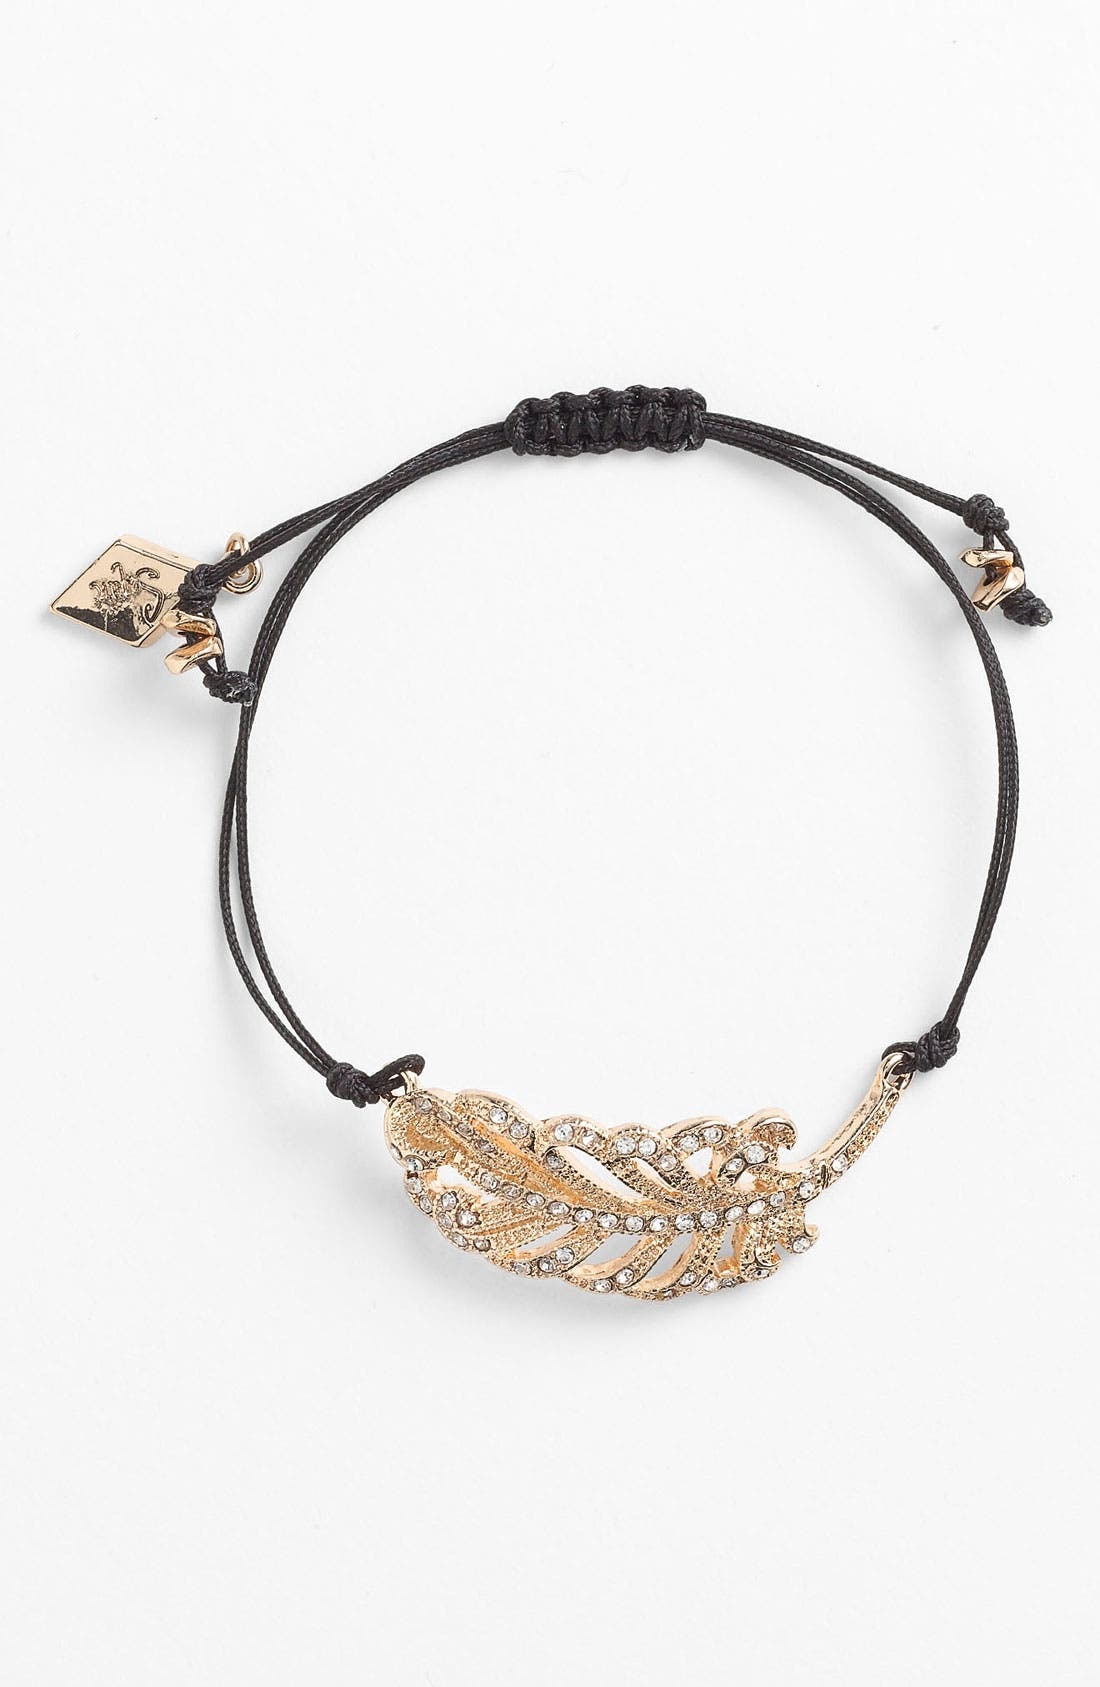 Main Image - Sequin 'Deco' Friendship Bracelet